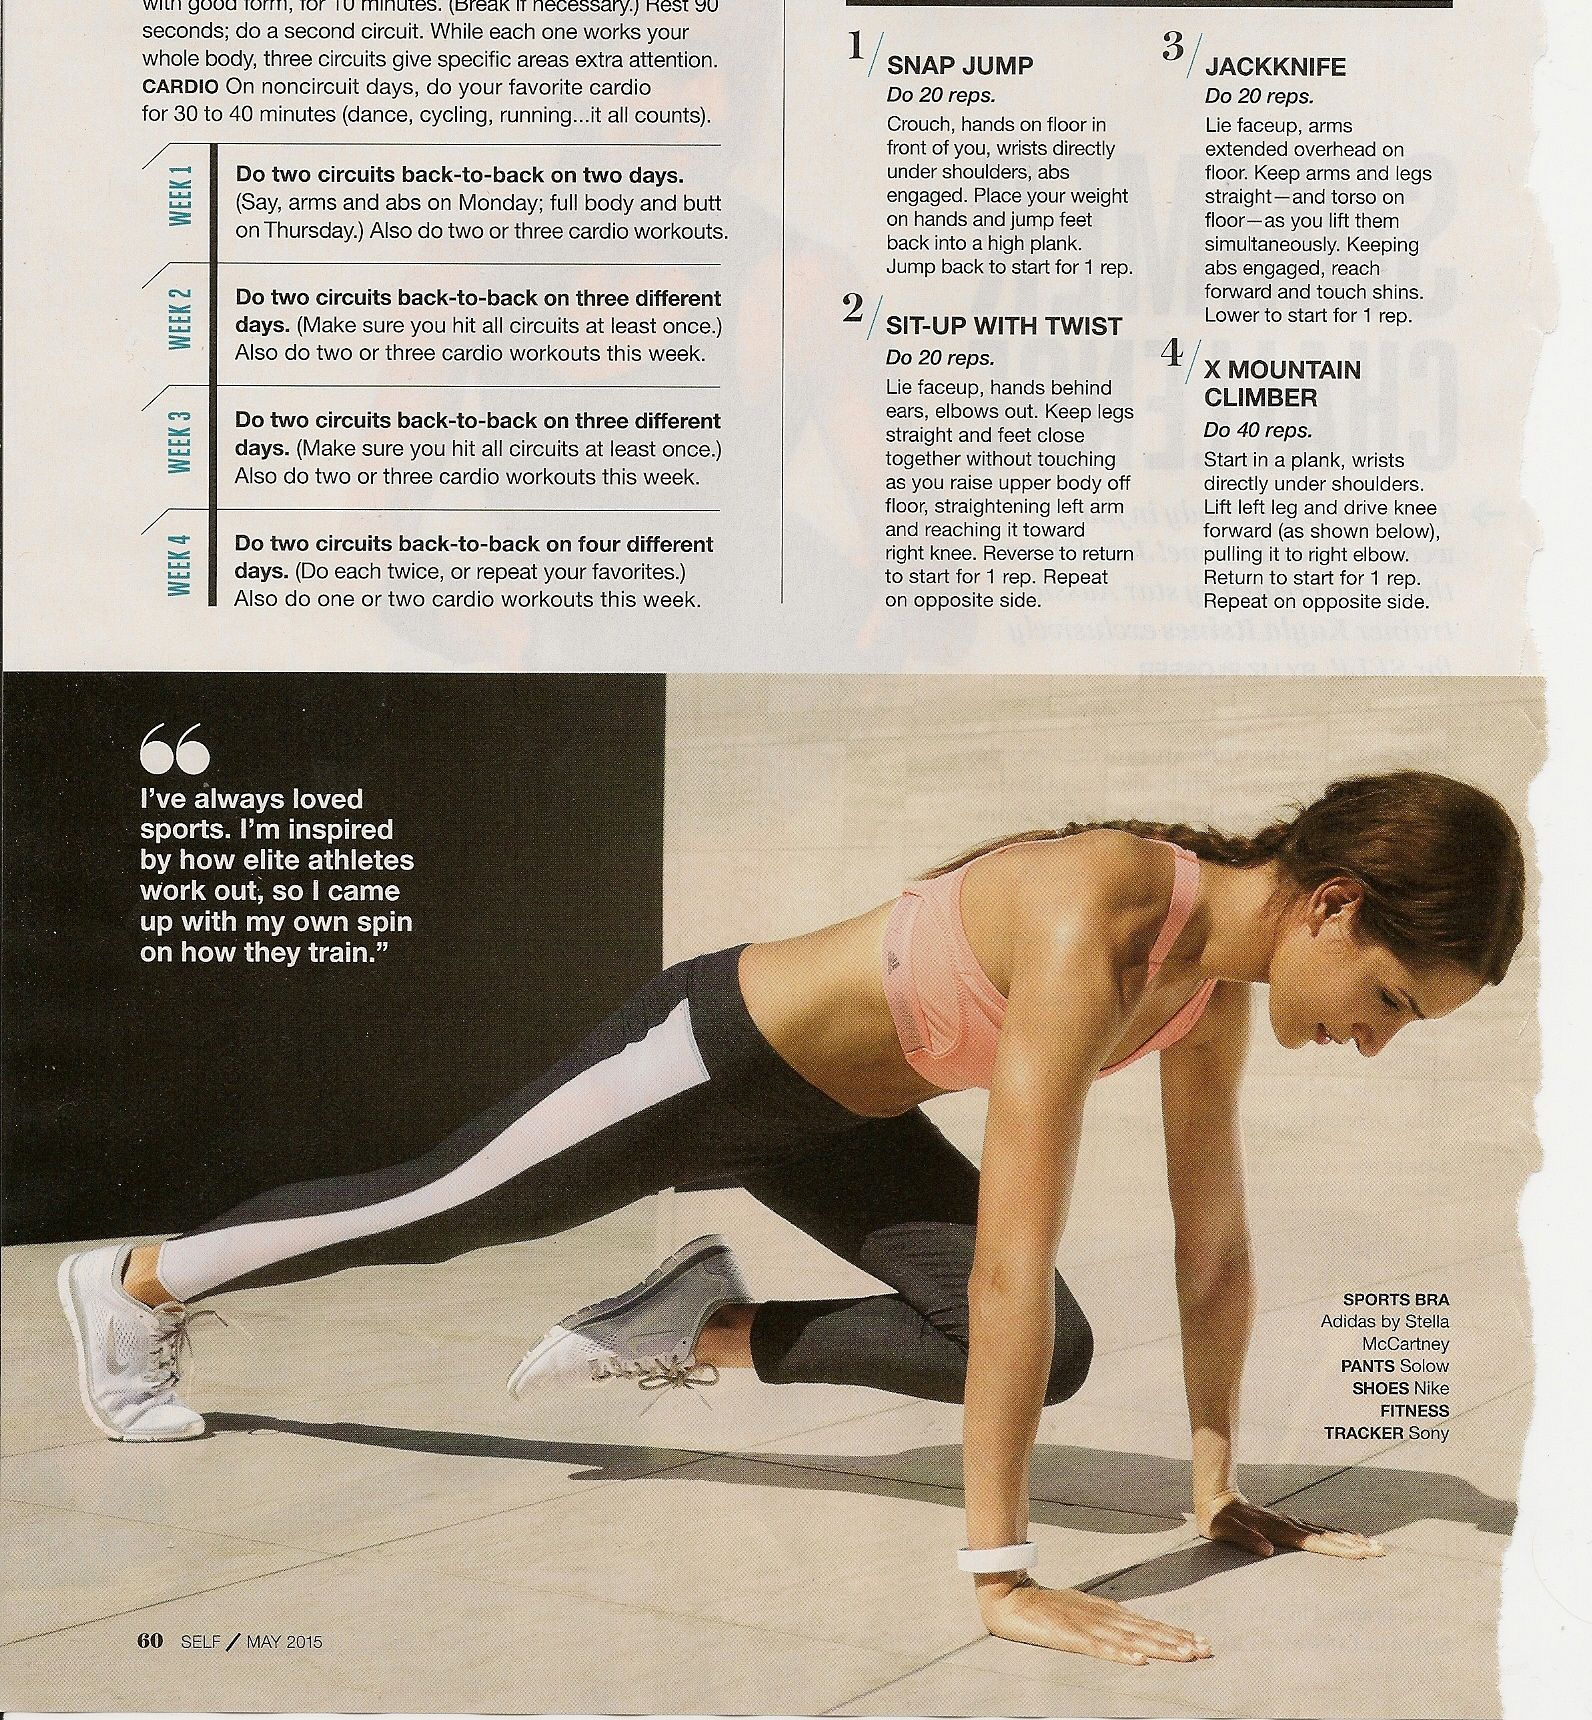 Pin By Ellen Beckemeyer On Exercise Motivation With Images Fitness Motivation Exercise Cardio